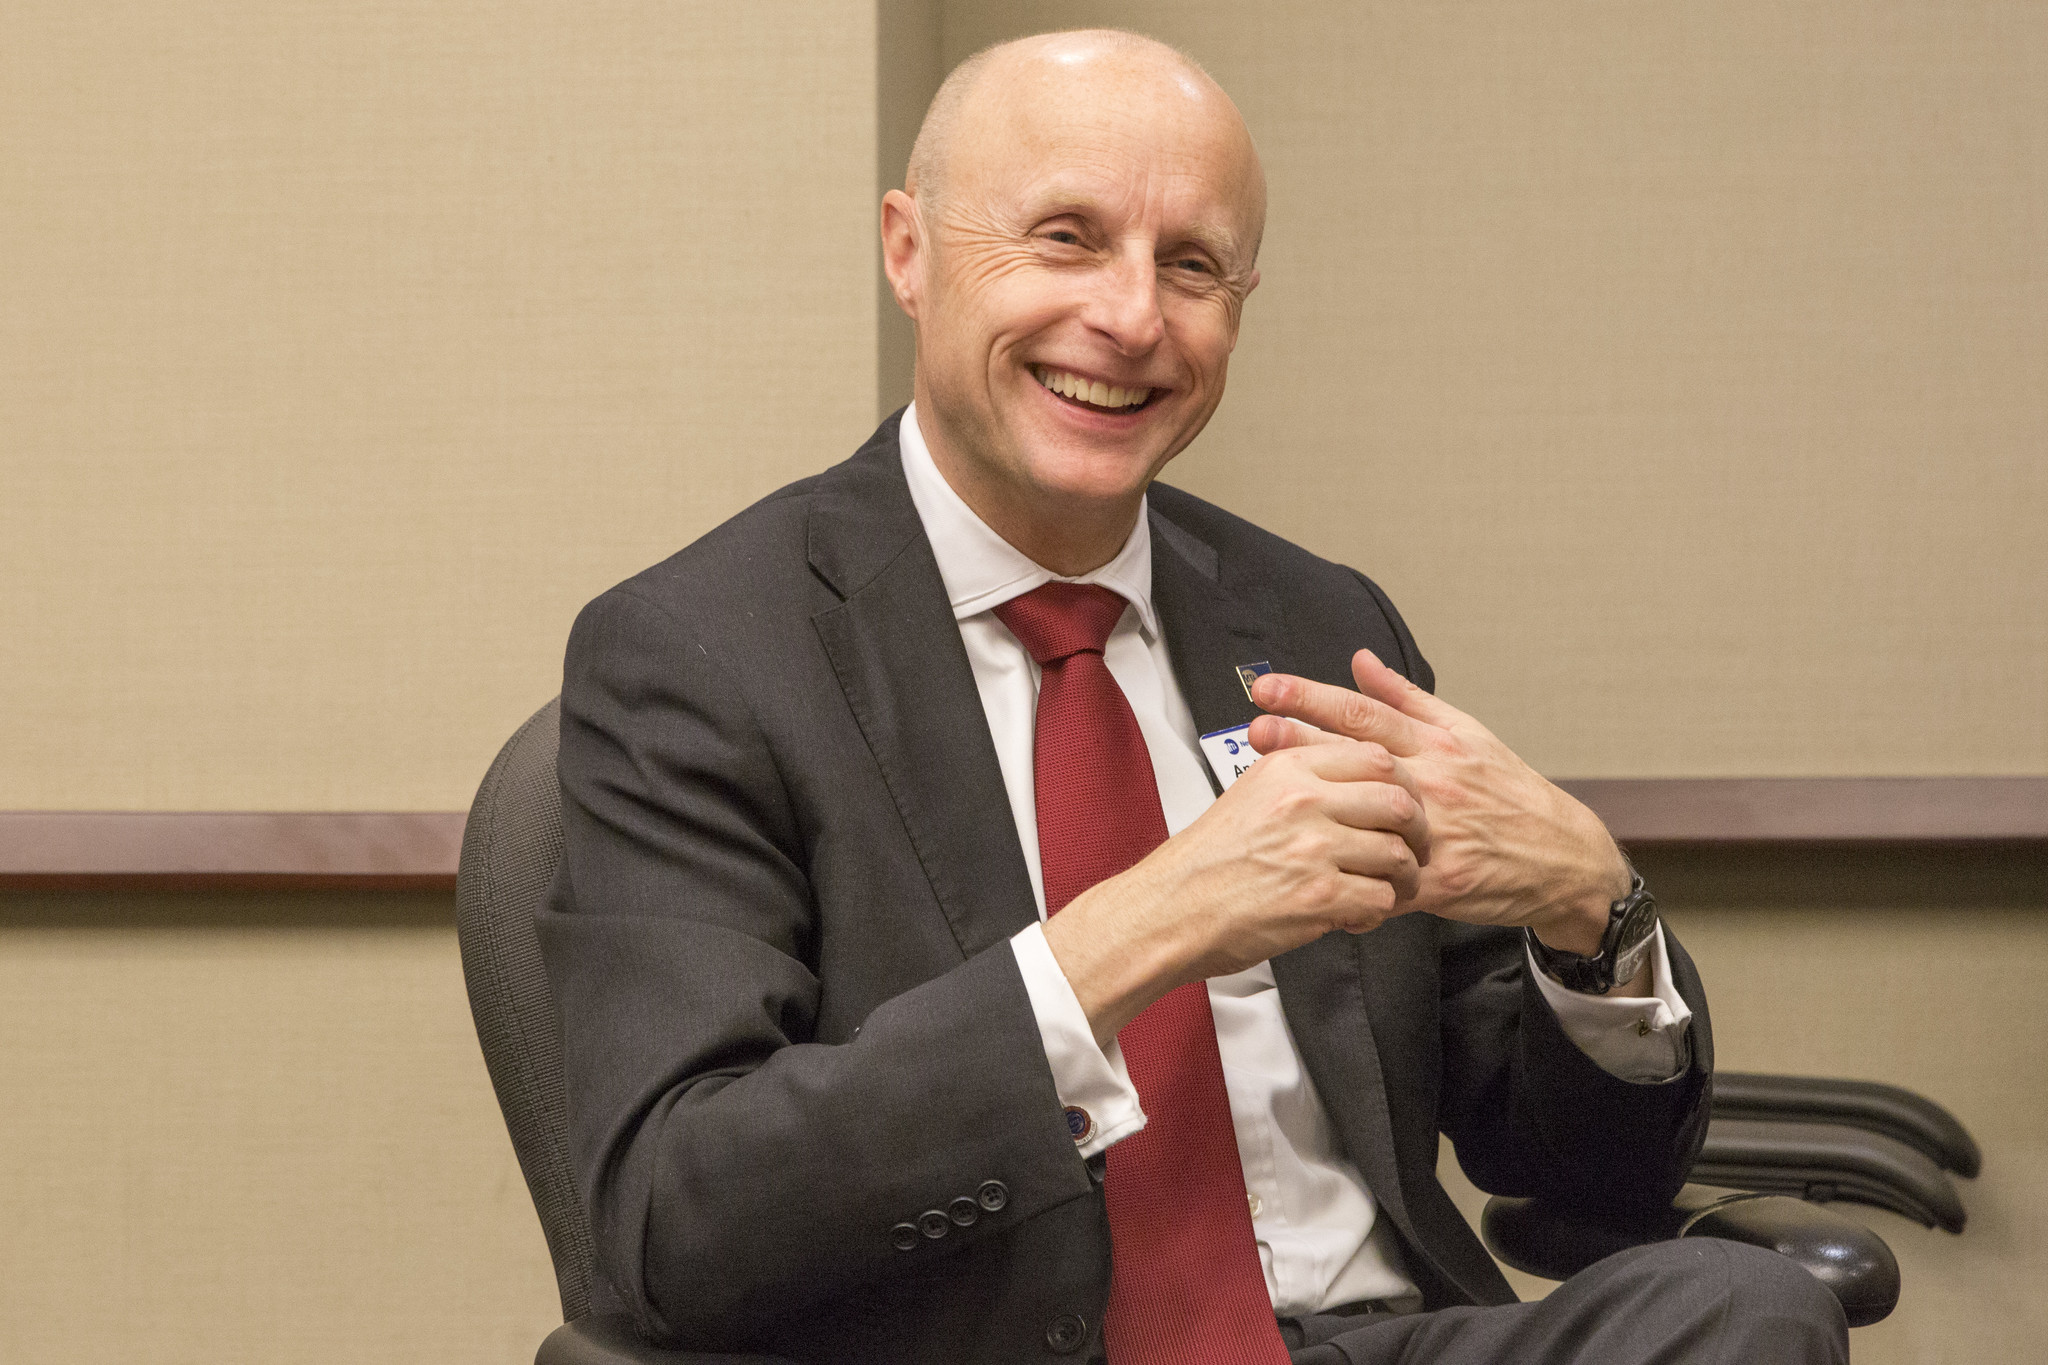 NYC Transit Authority exec Andy Byford gets hearty send off on last commute home